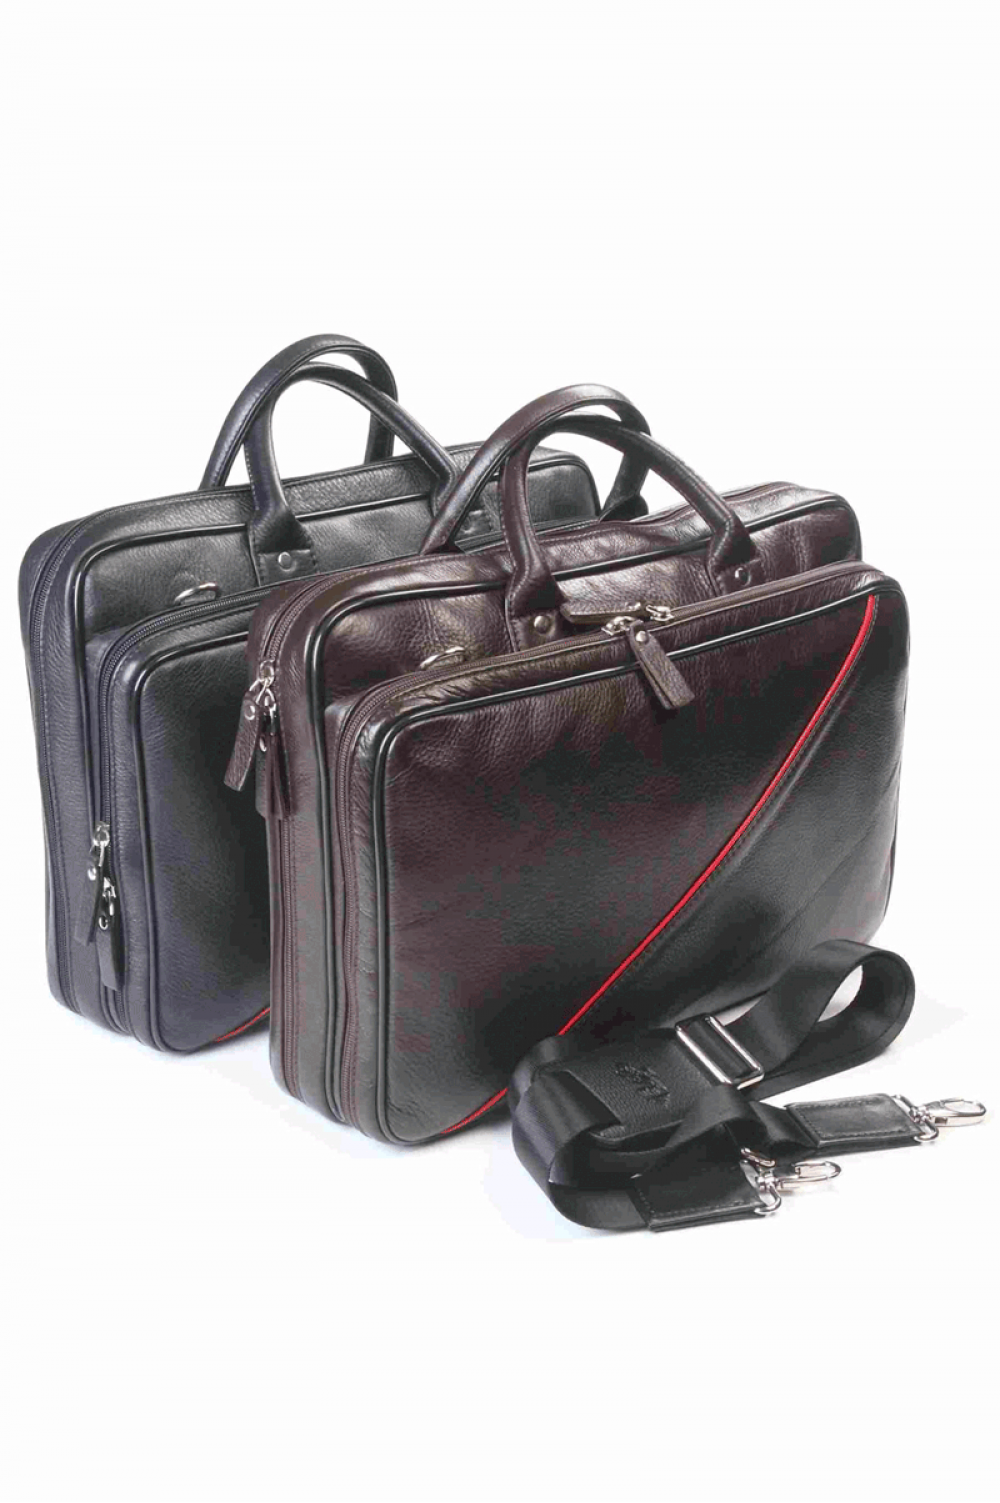 Black business bag for laptop or documents from natural leather - 217211